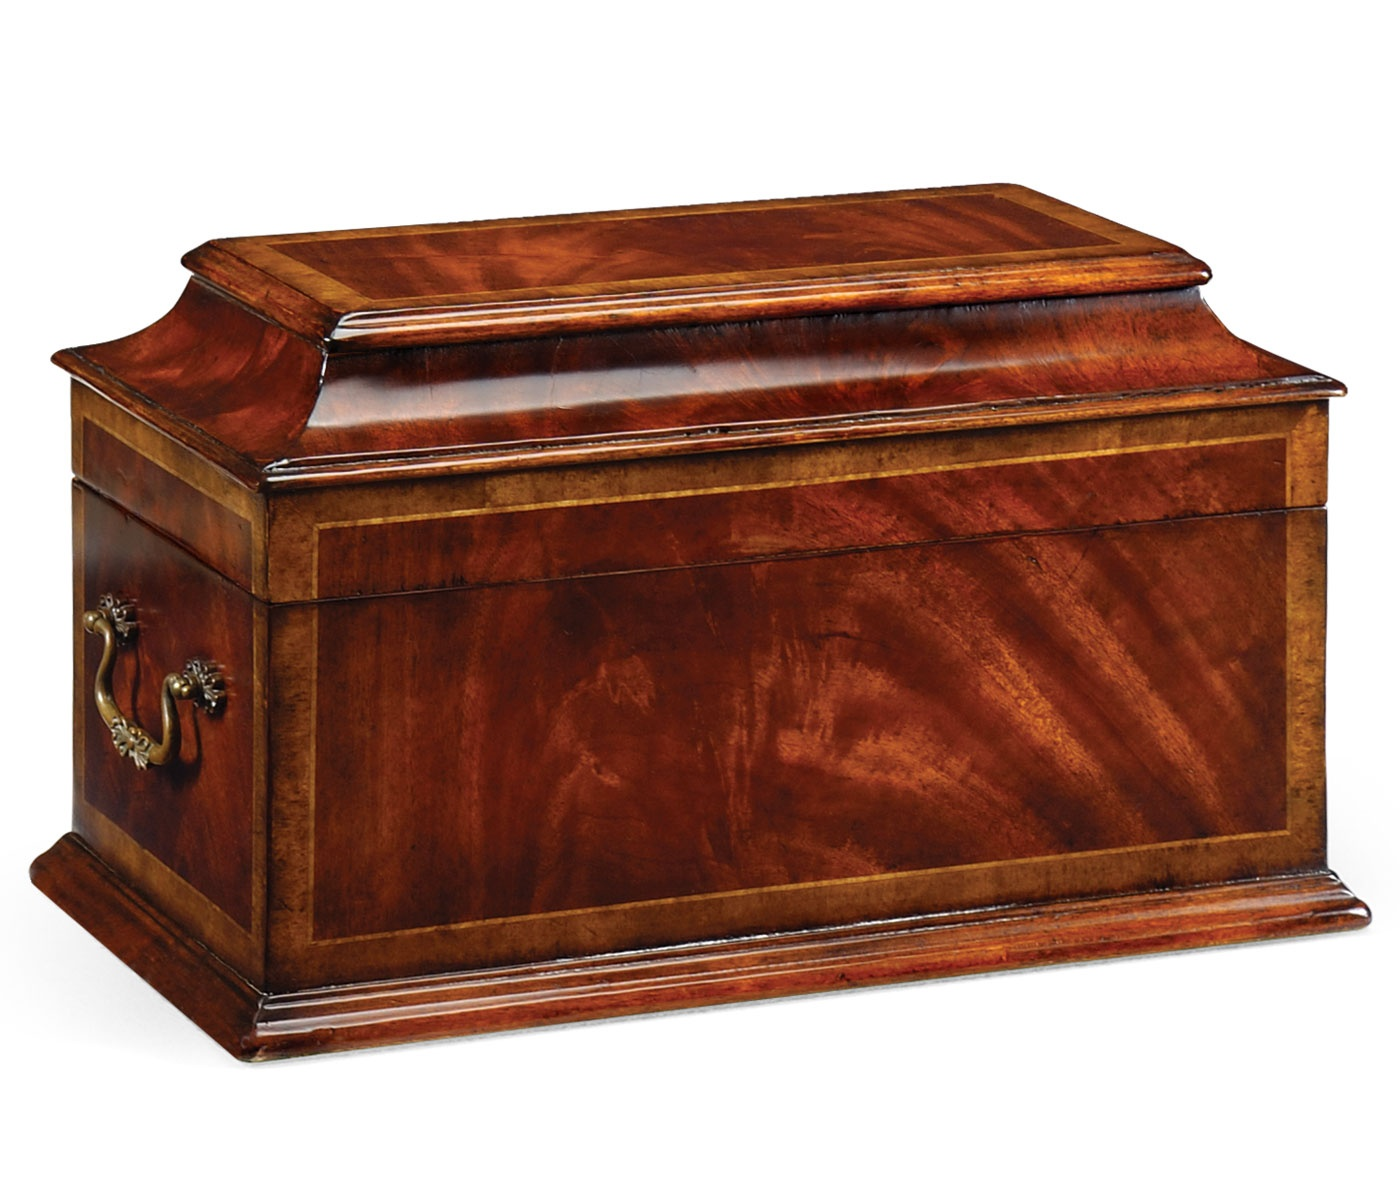 Mahogany Jewellery Box Swanky Interiors